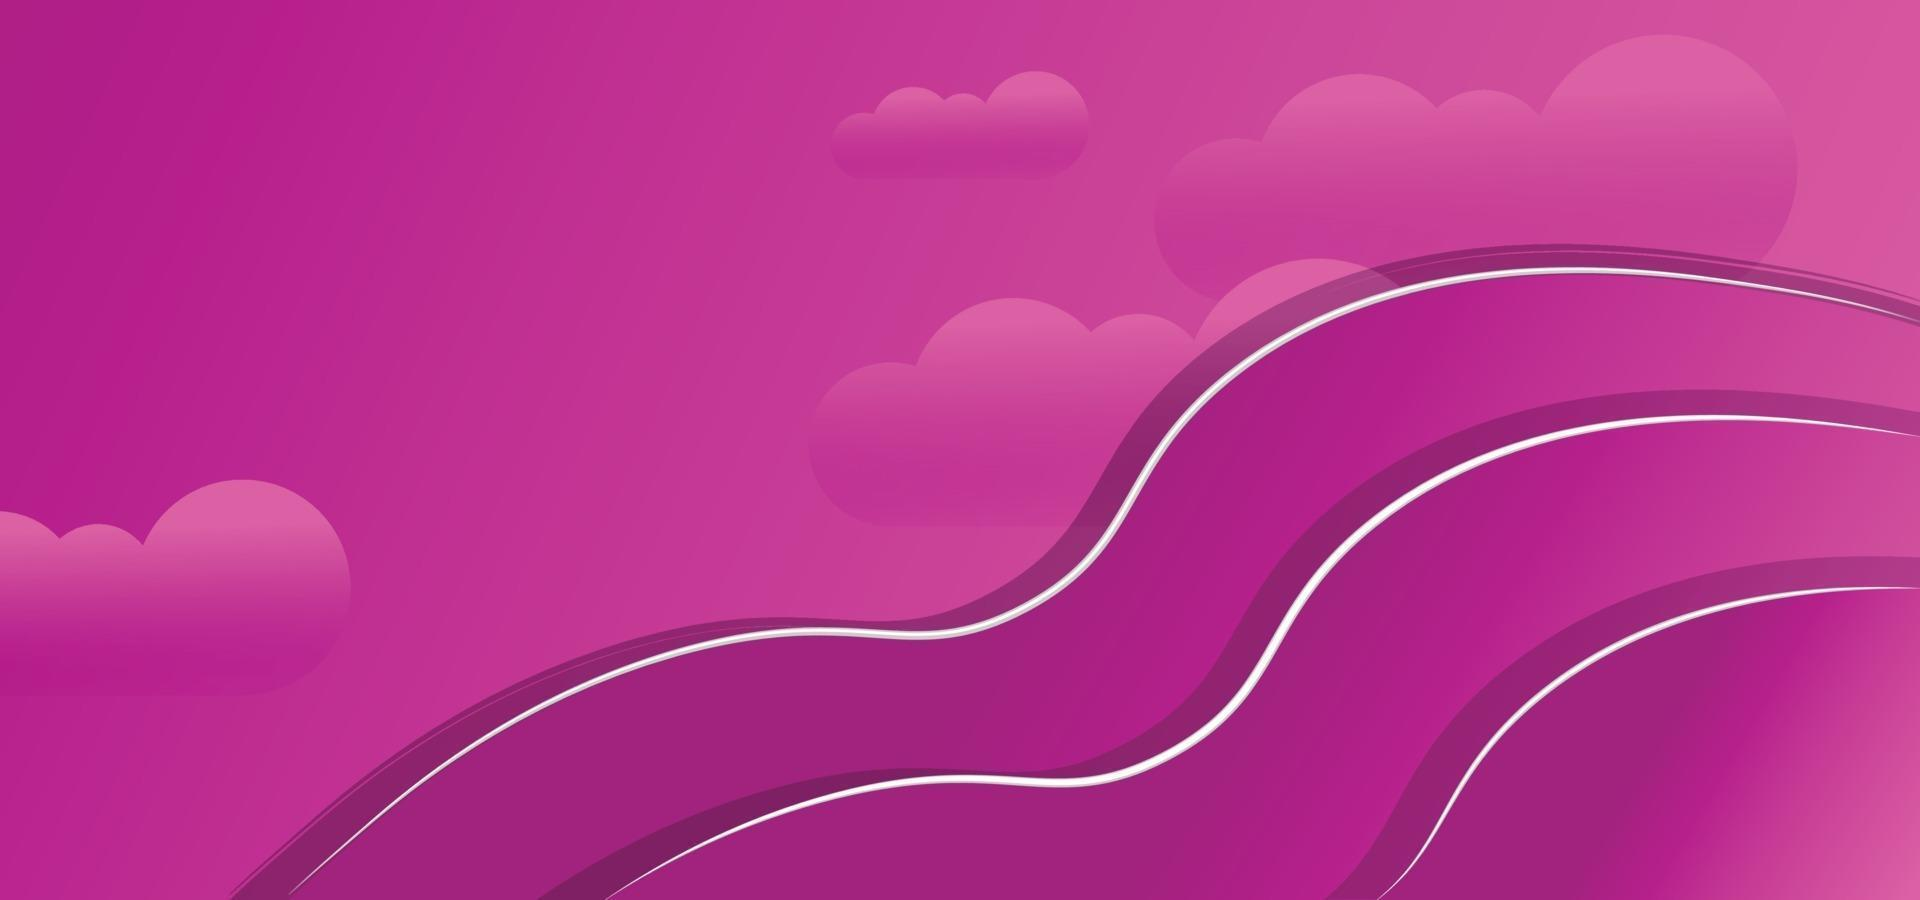 abstract clouds geometric shapes beautiful background or banner vector